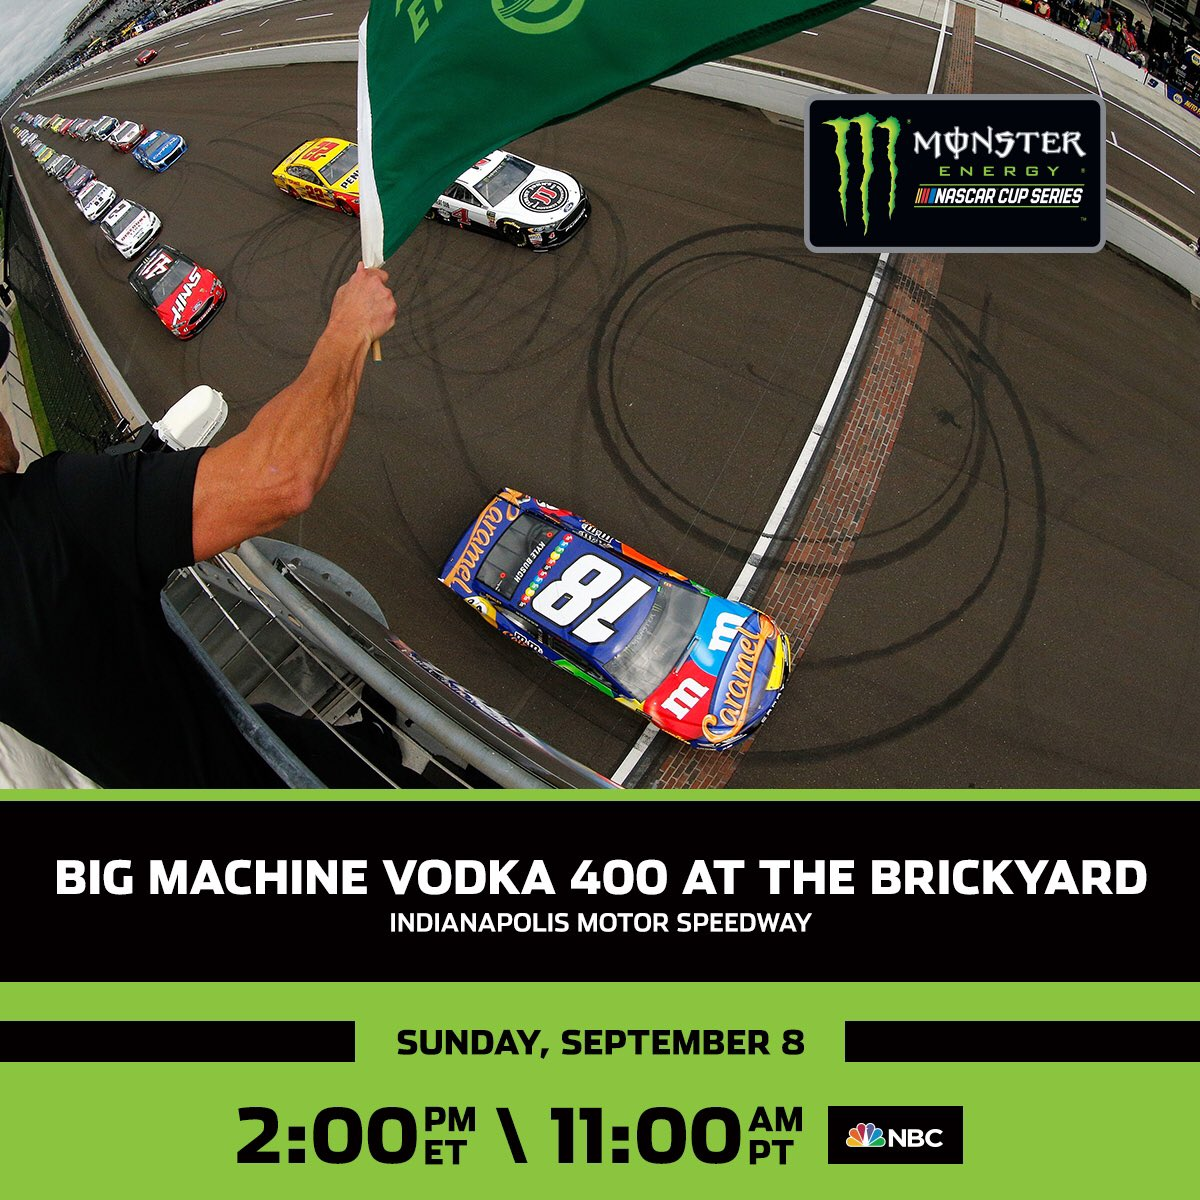 Only two spots remain! The #Brickyard400 rounds out the regular season at 1:00 p.m. CT on NBC.